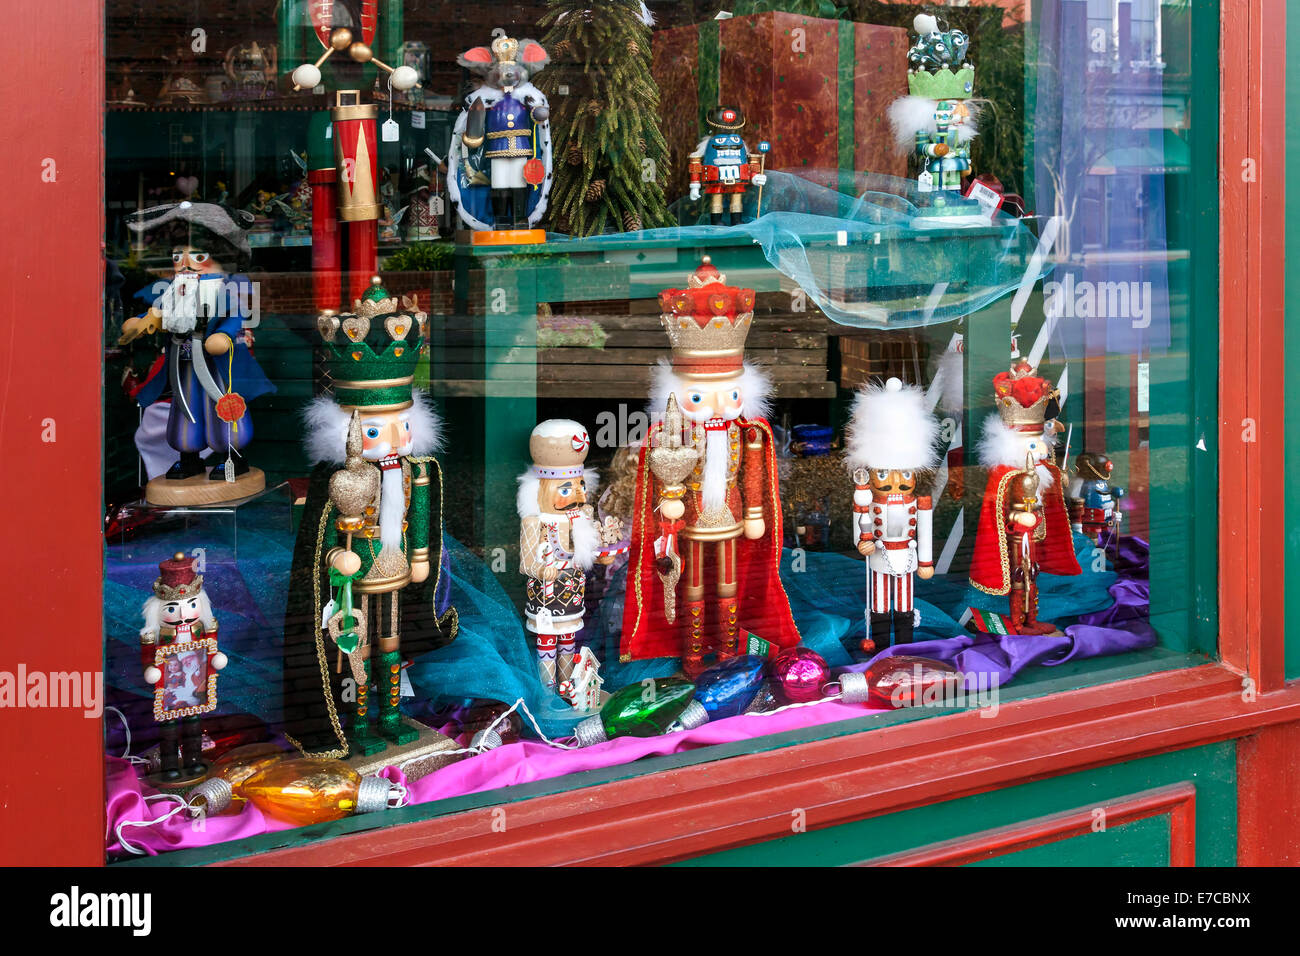 santas nutcrackers and christmas decorations in old shop window in historic district of fernandina beach florida usa